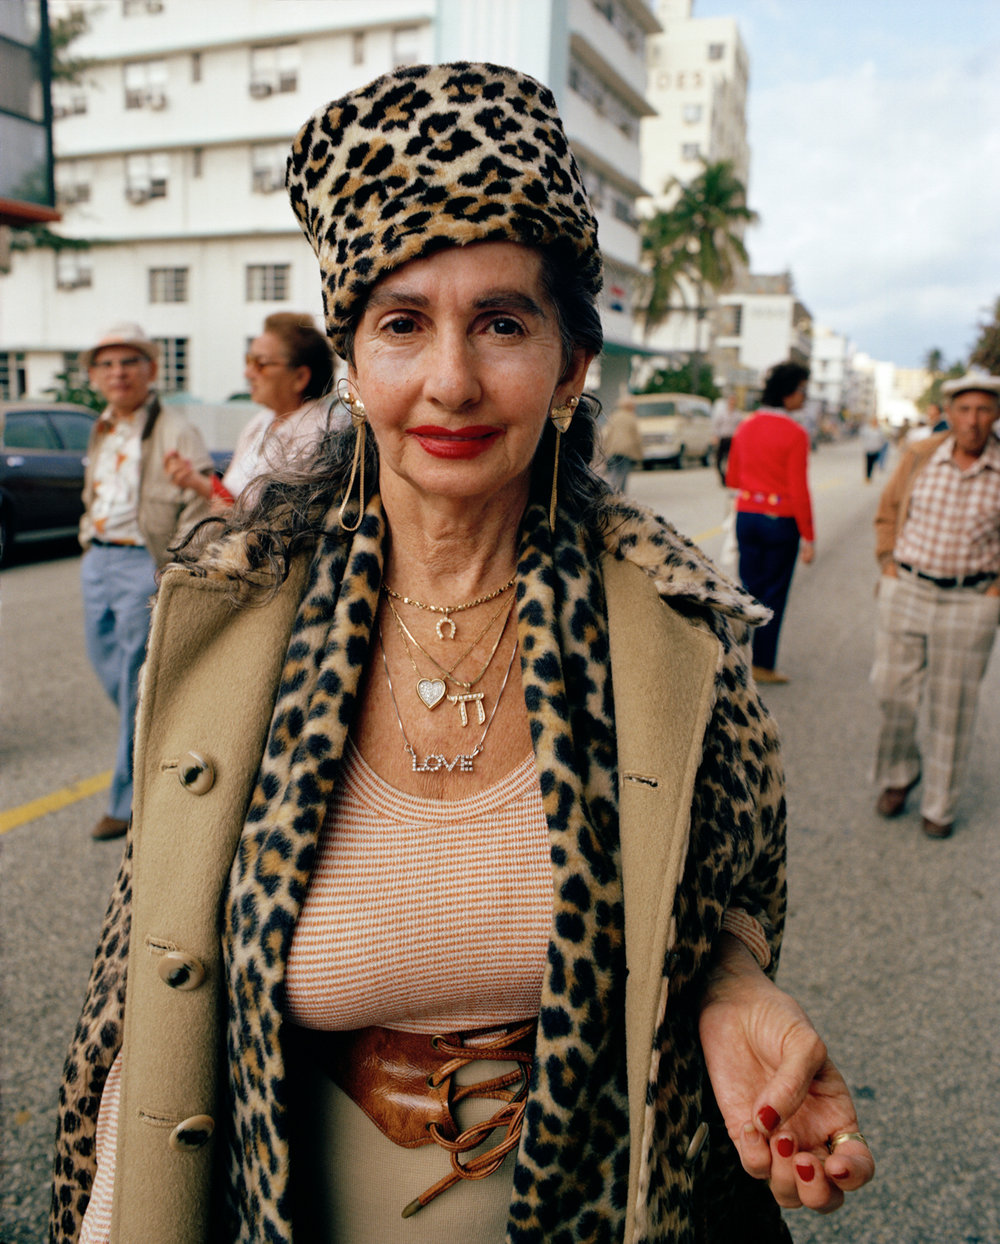 Woman on the street, South Beach, 1981